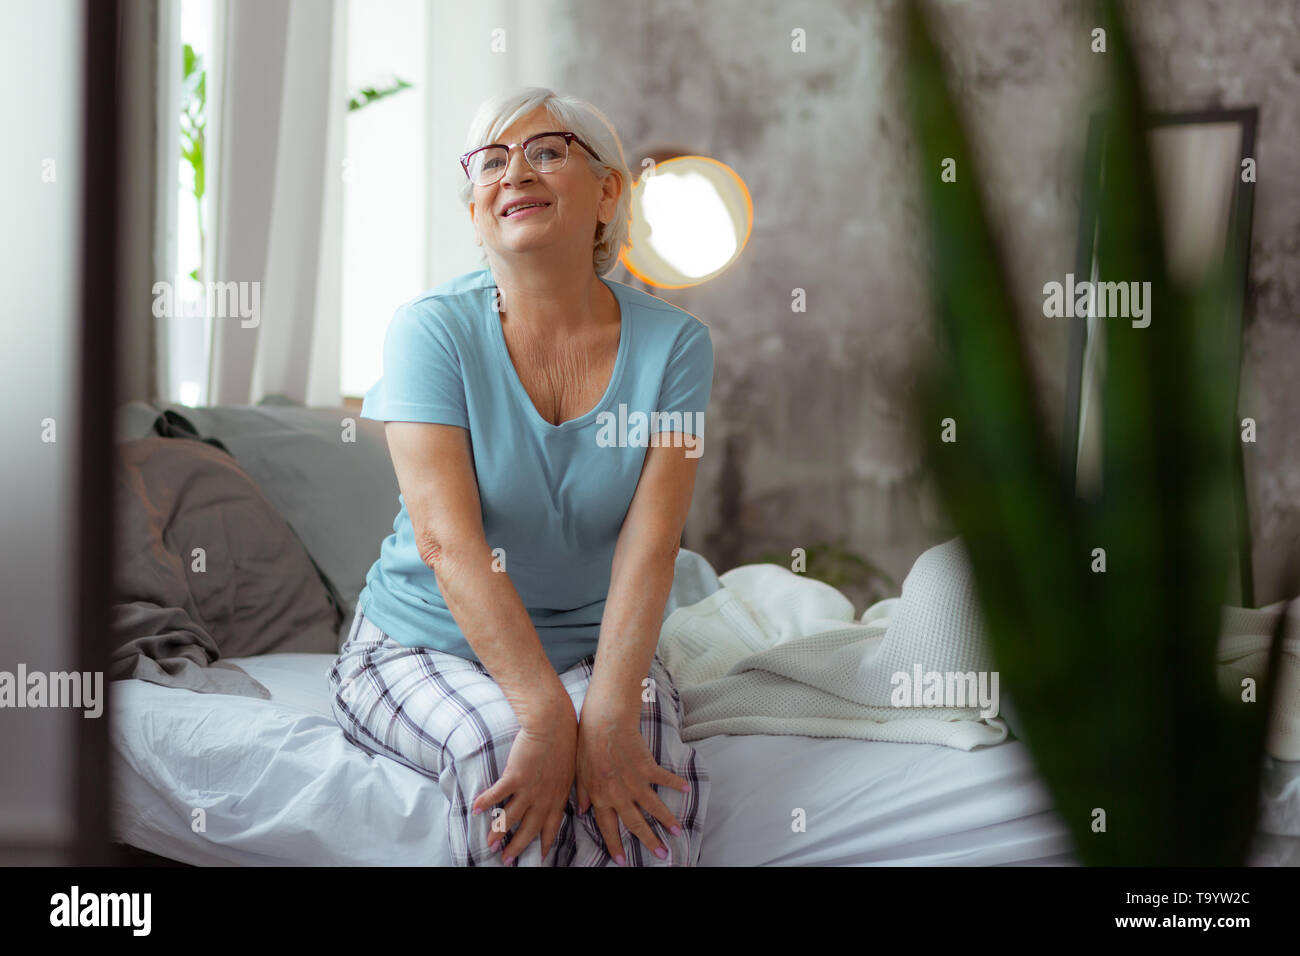 Smiling woman wearing eyeglasses and pajama sitting on the bed - Stock Image